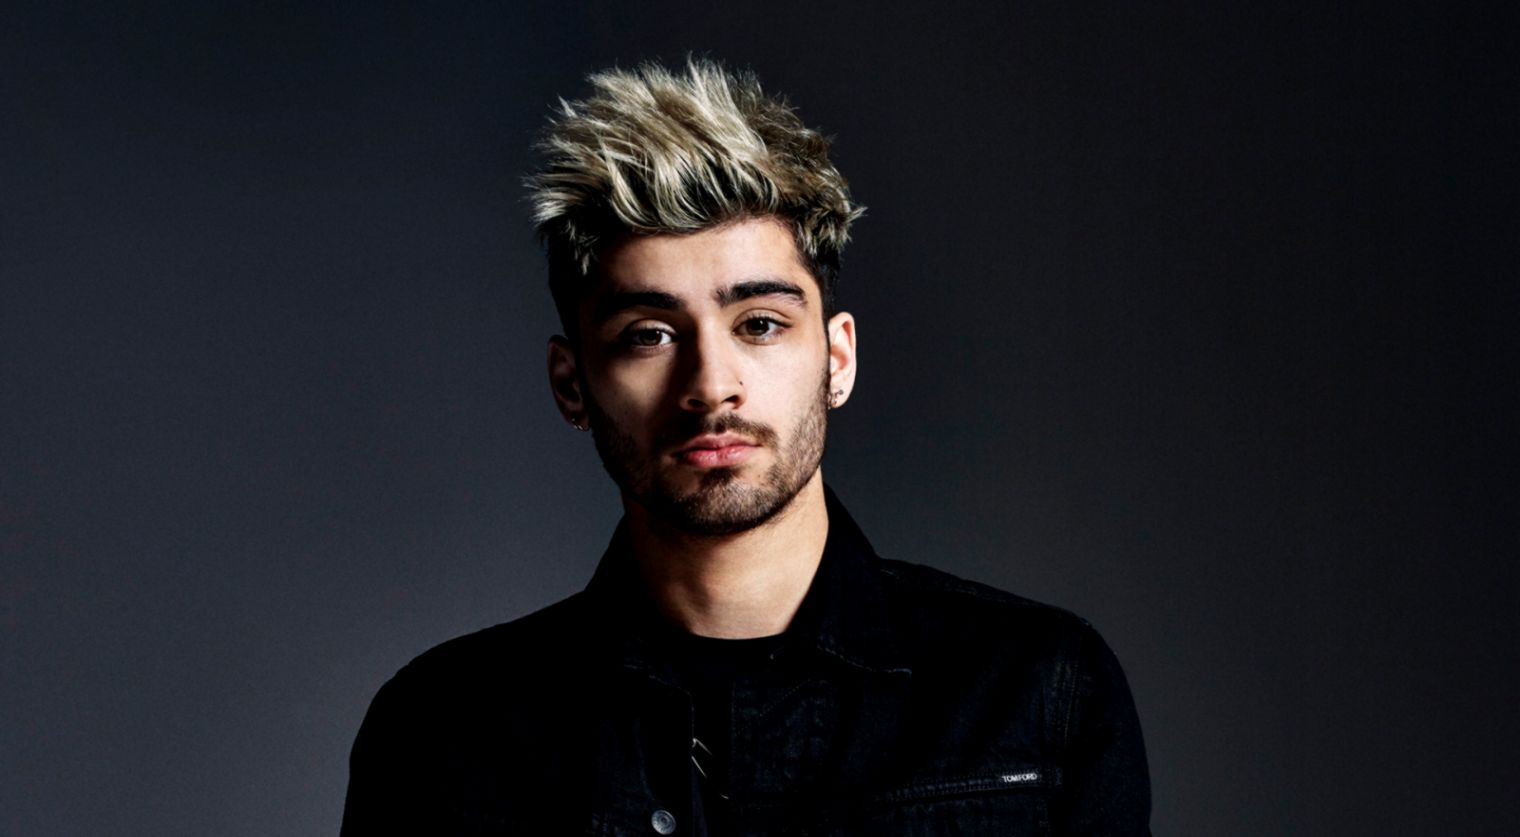 Zayn malik hd images get free top quality zayn malik hd images